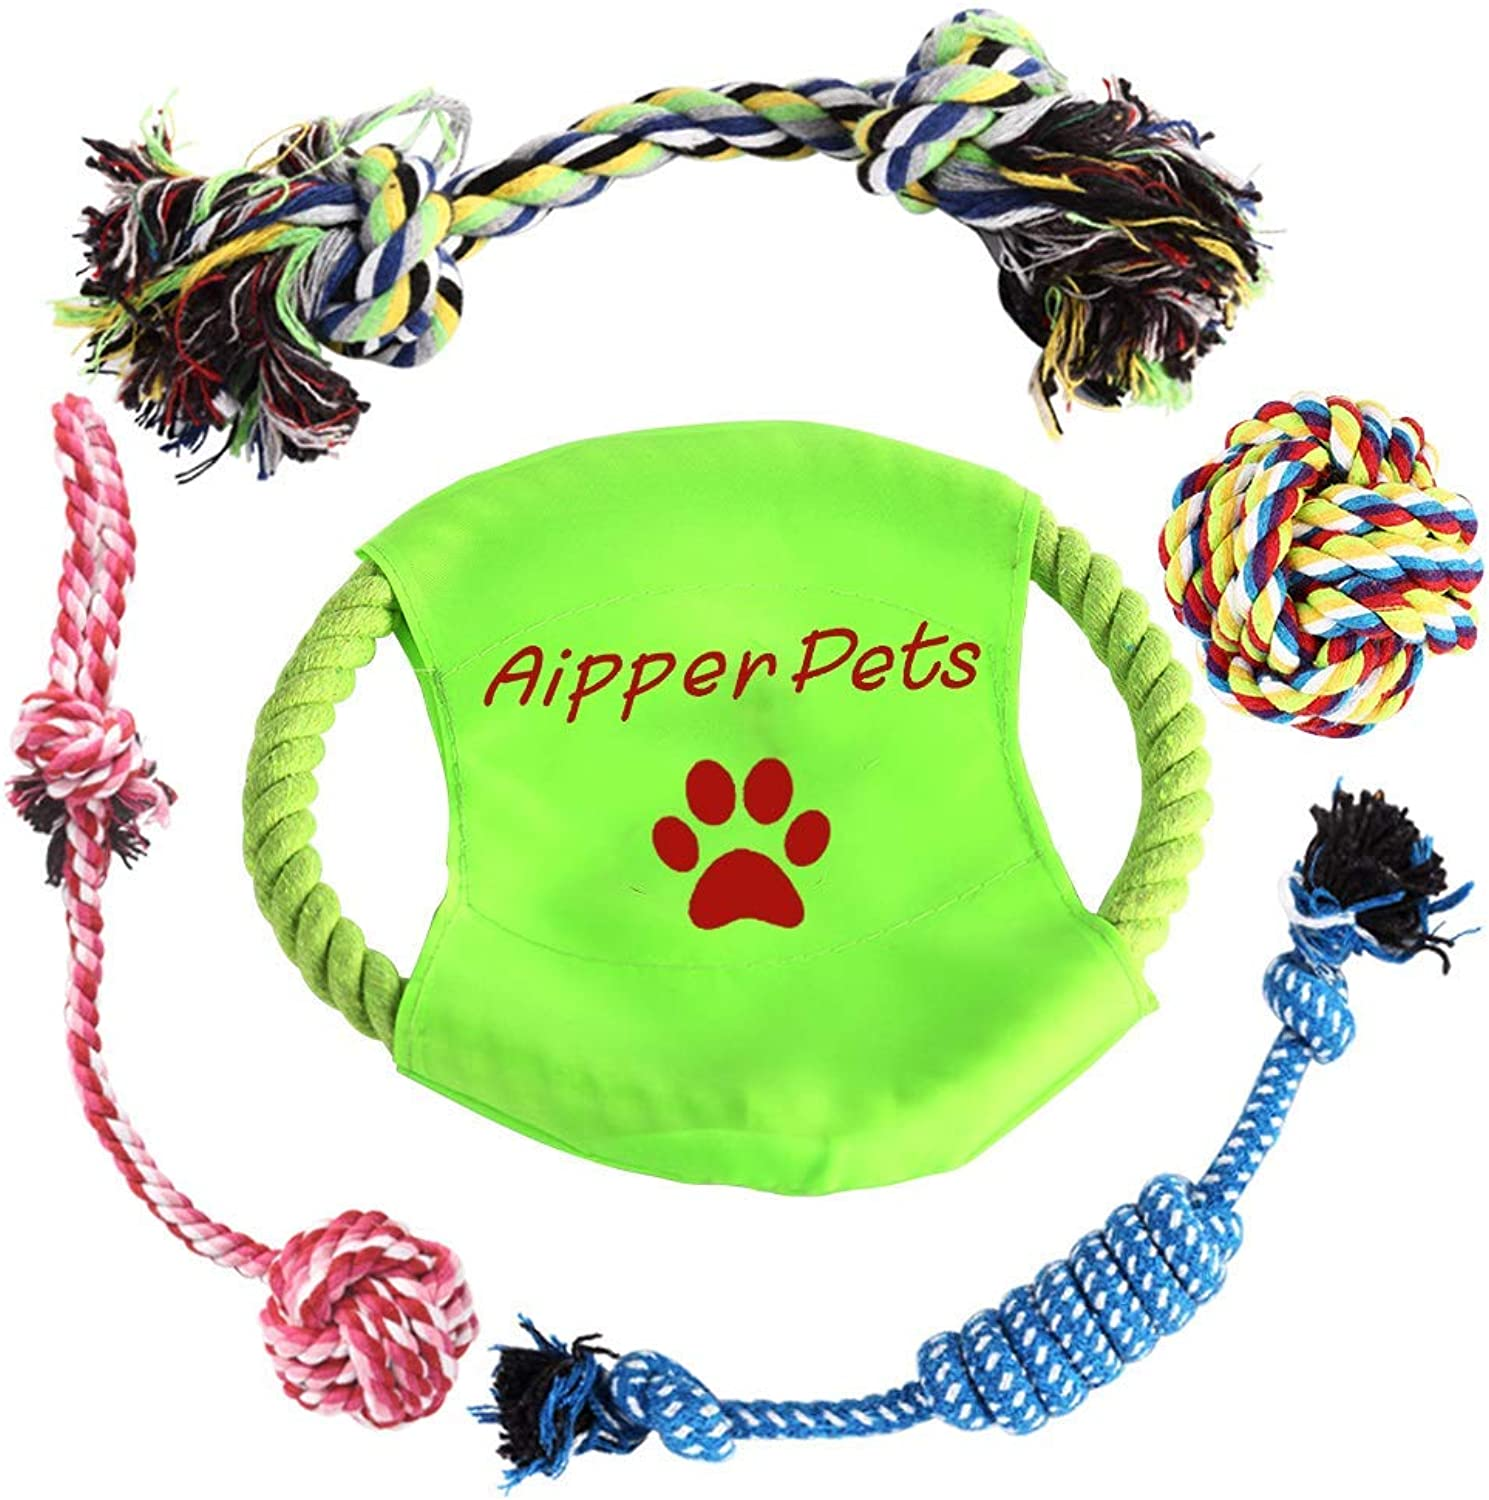 Aipper Dog Rope Toys 5 Pack, Dog Chew Toys for Playtime and as a Dental Teaser, Variety Puppy Teething Toys for Medium to Small Doggie (Random colors)